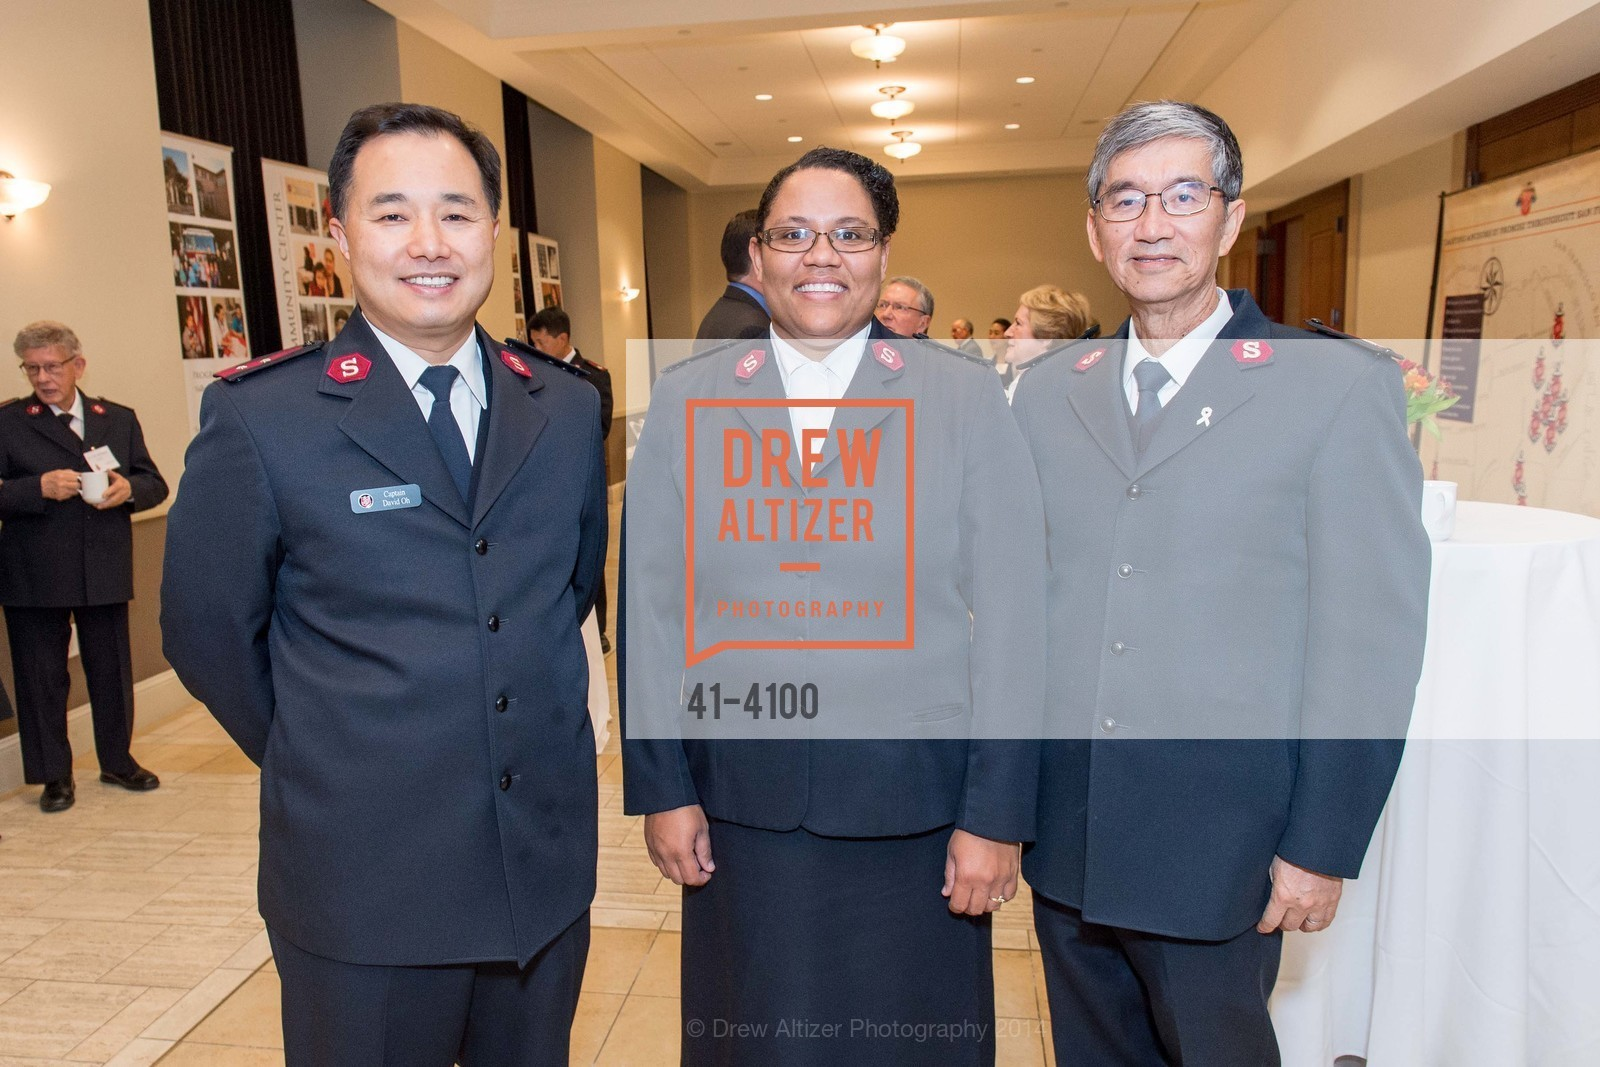 Cpt. David Oh, Regina Shull, Maj. Thomas Mui, Photo #41-4100